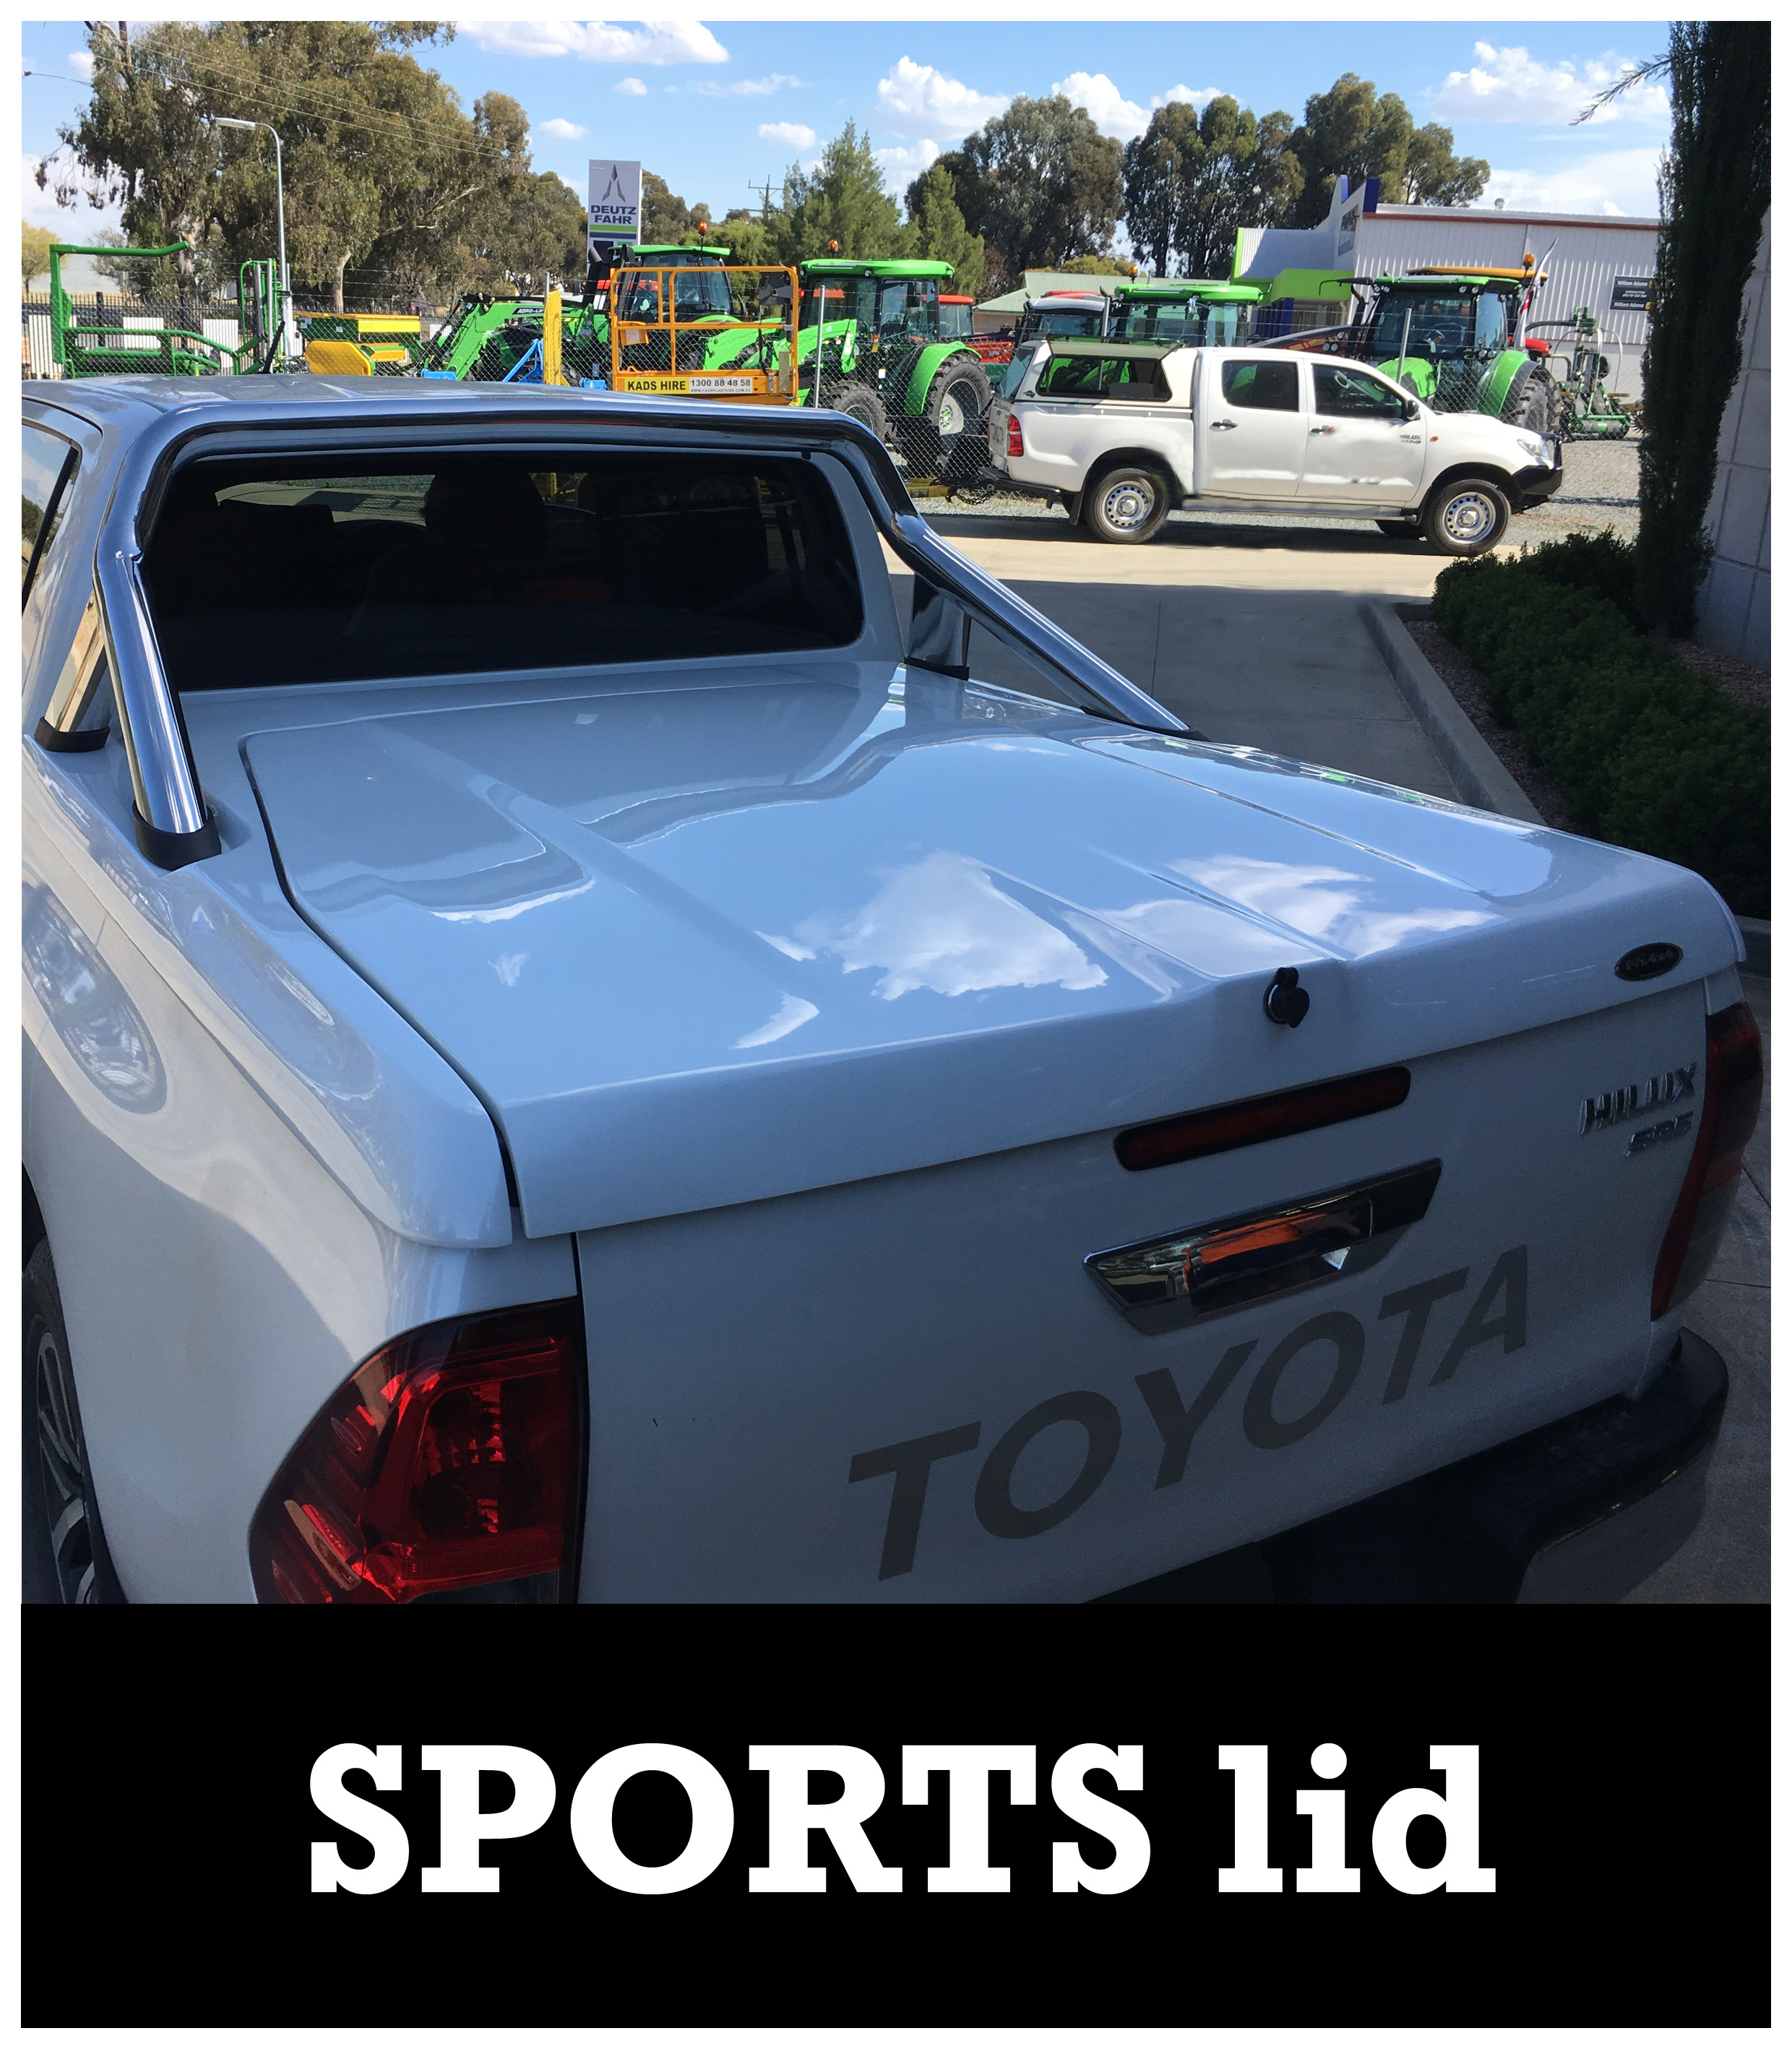 WEbsite_Hilux_SPORTS_Thumbnail_edited-1.jpg